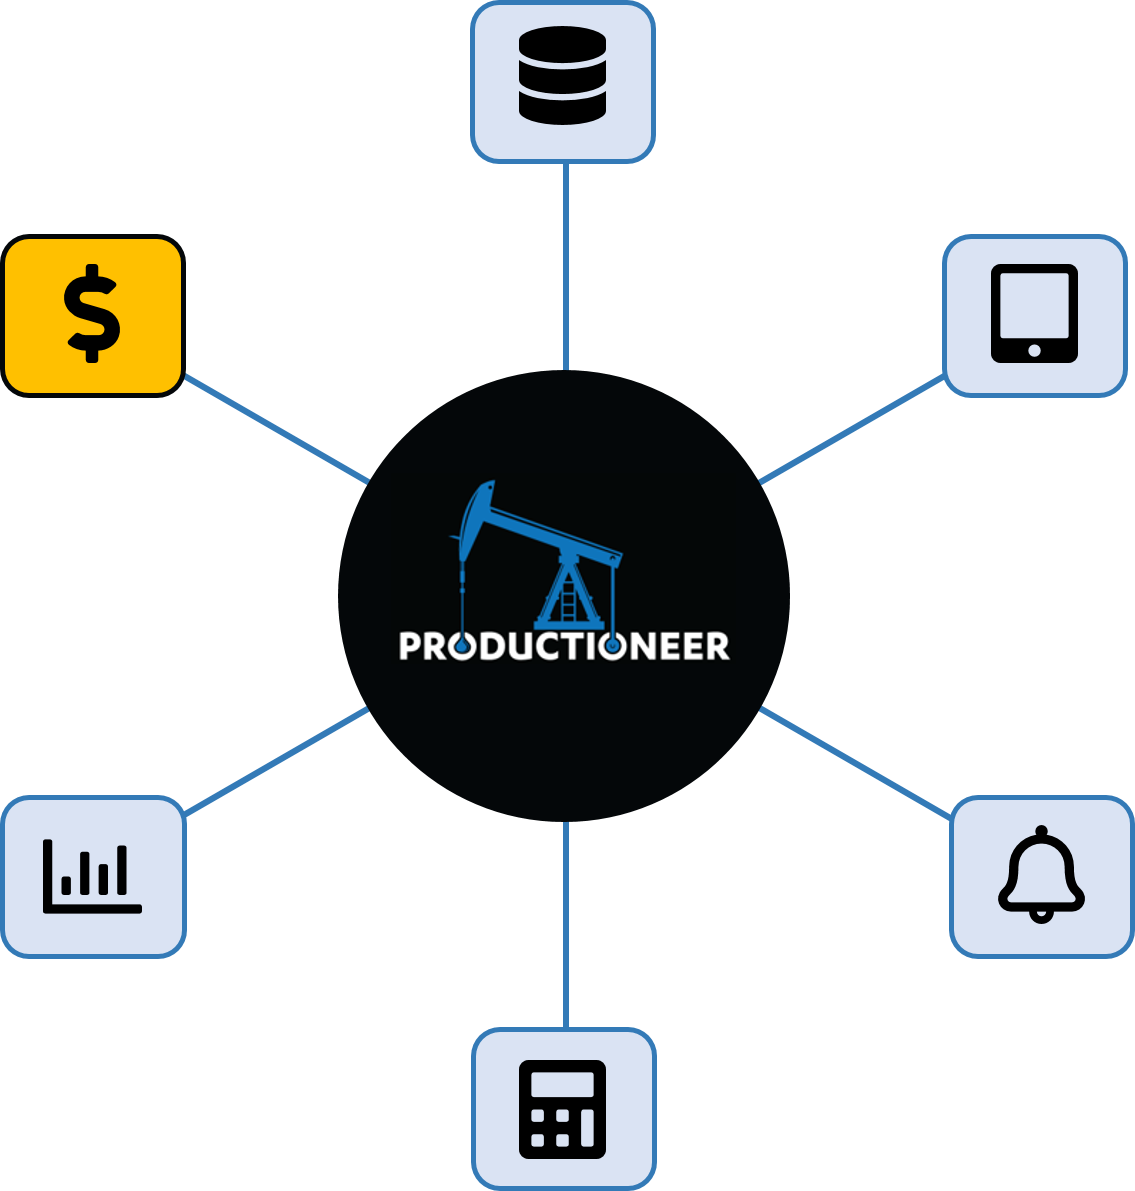 Productioneer expenditure tracking feature wheel